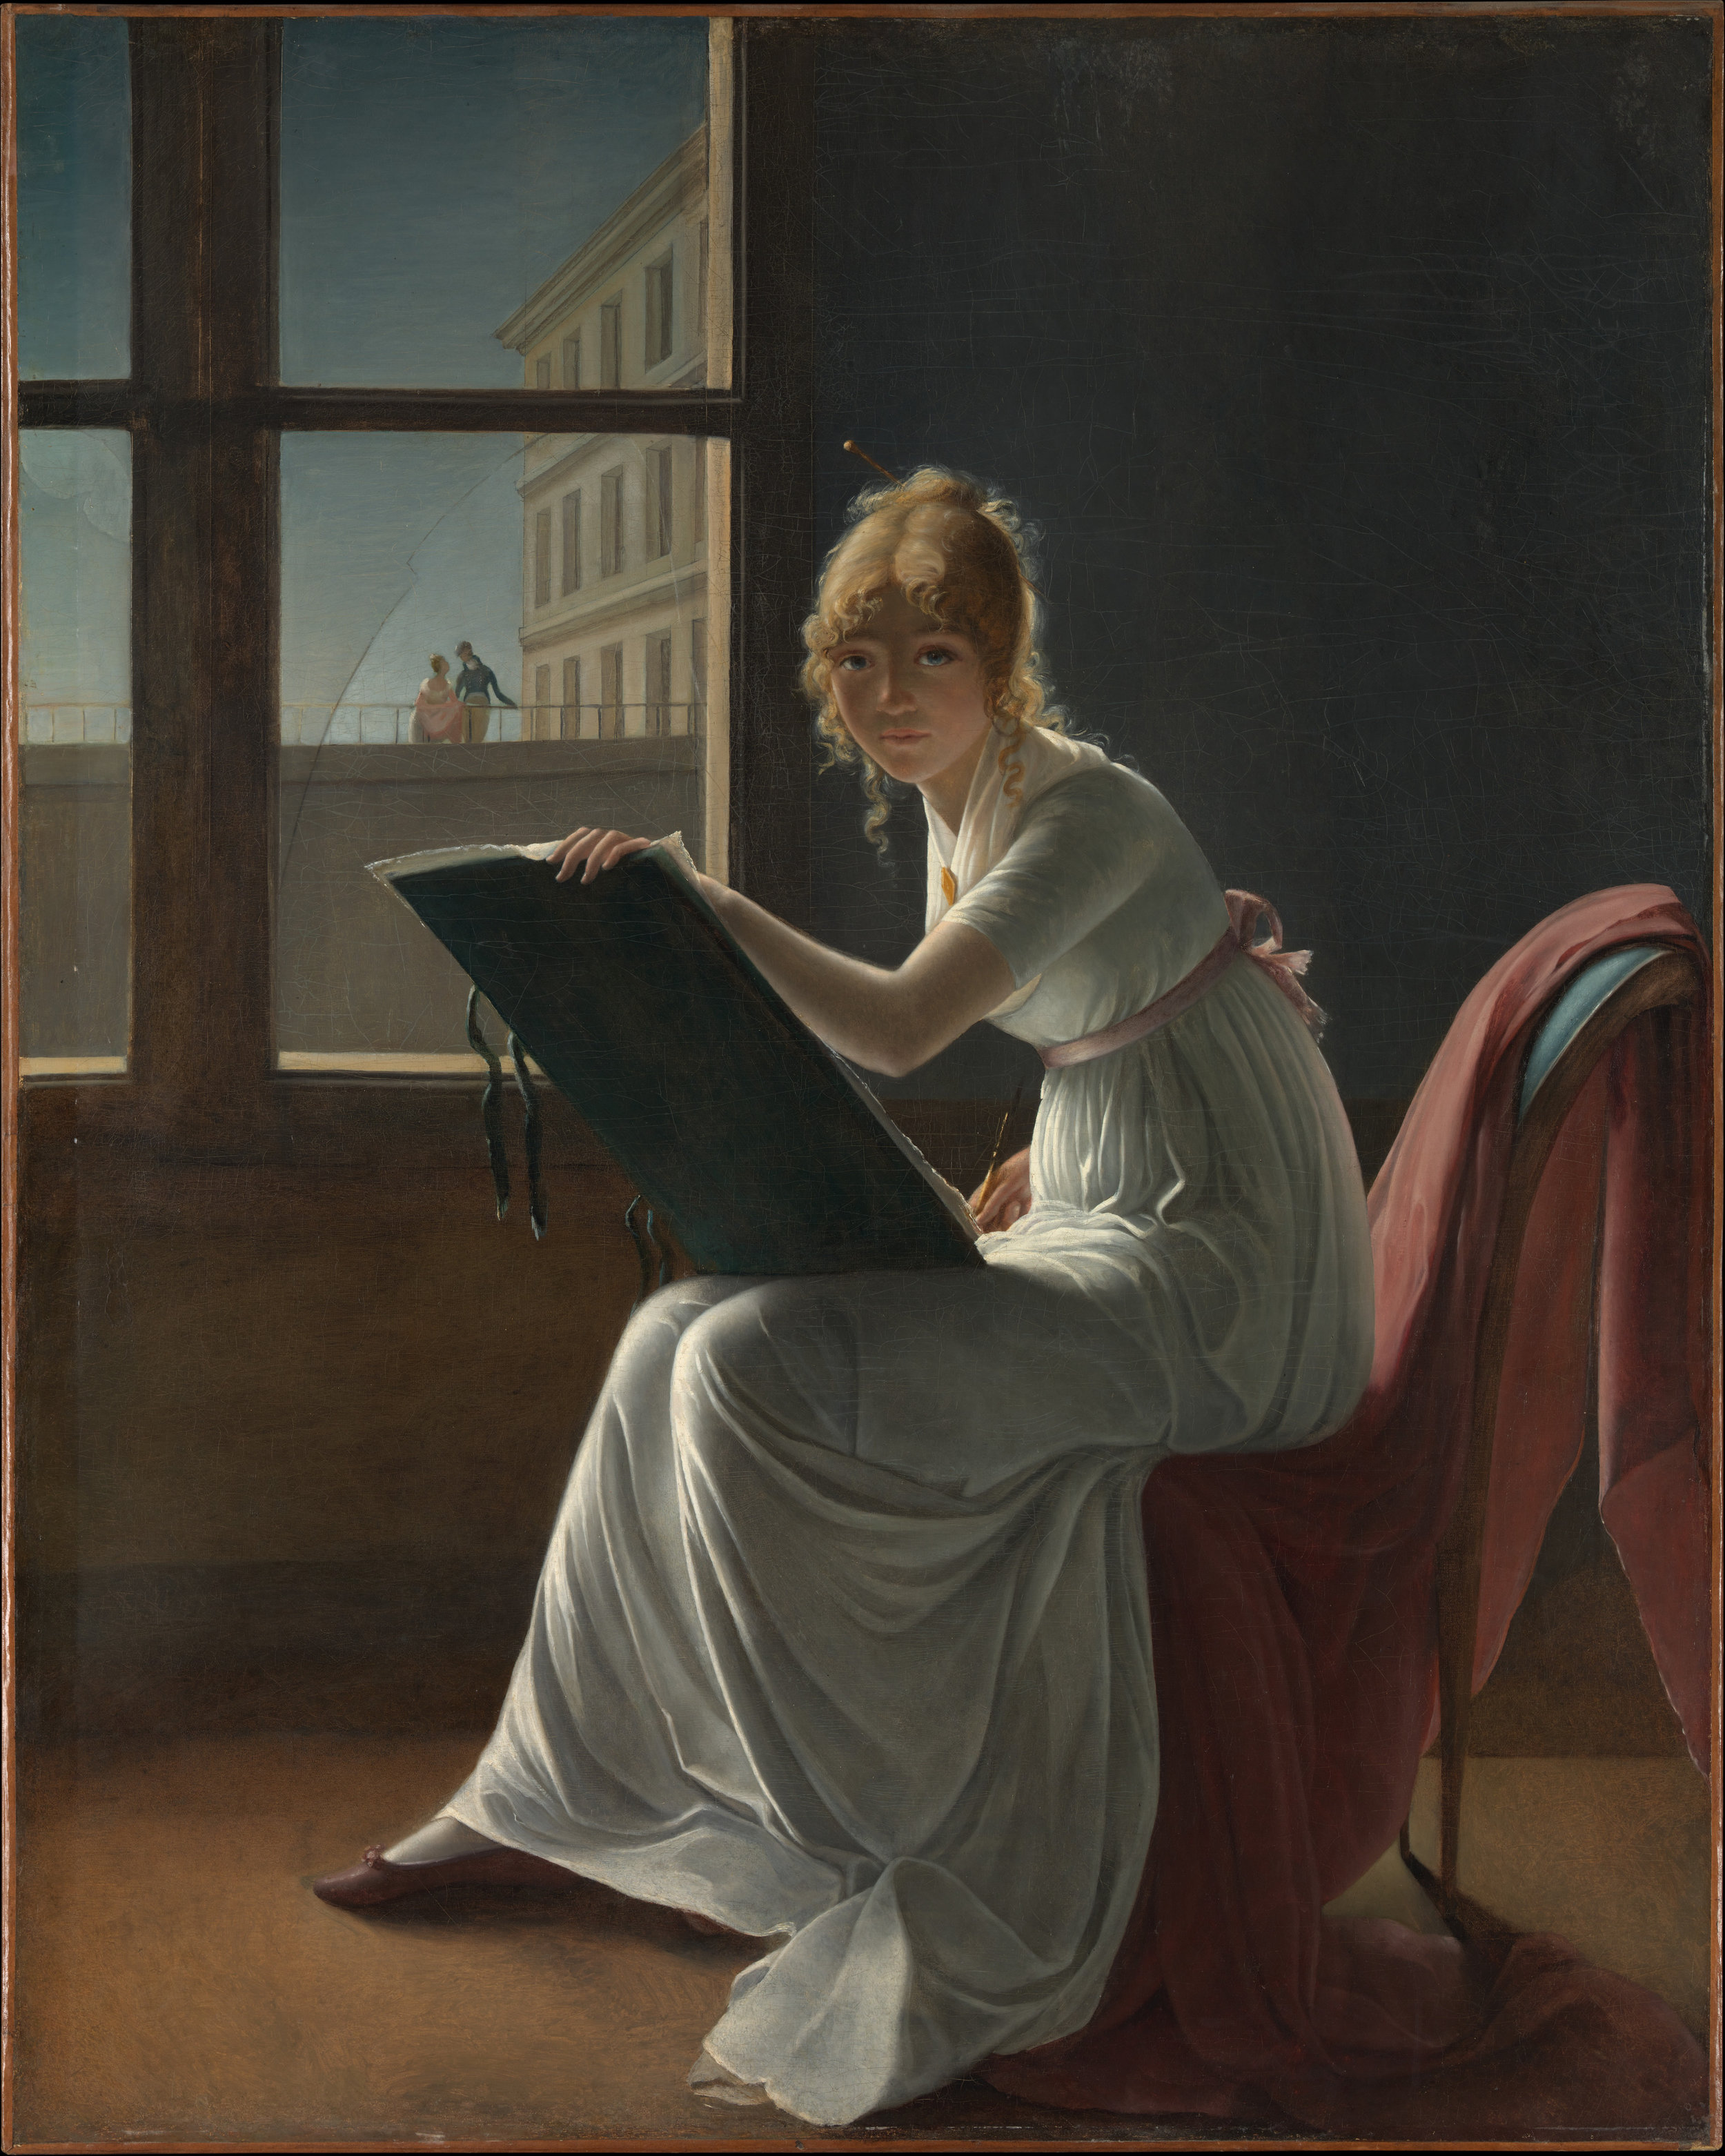 Marie Denise Villers (French, Paris 1774–1821 Paris (?)).  Marie Joséphine Charlotte du Val d'Ognes (1786–1868) . 1801. Oil on canvas. 63 1/2 × 50 5/8 in. (161.3 × 128.6 cm). The Metropolitan Museum of Art. Mr. and Mrs. Isaac D. Fletcher Collection, Bequest of Isaac D. Fletcher. 17.120.204.  https://www.metmuseum.org/art/collection/search/437903